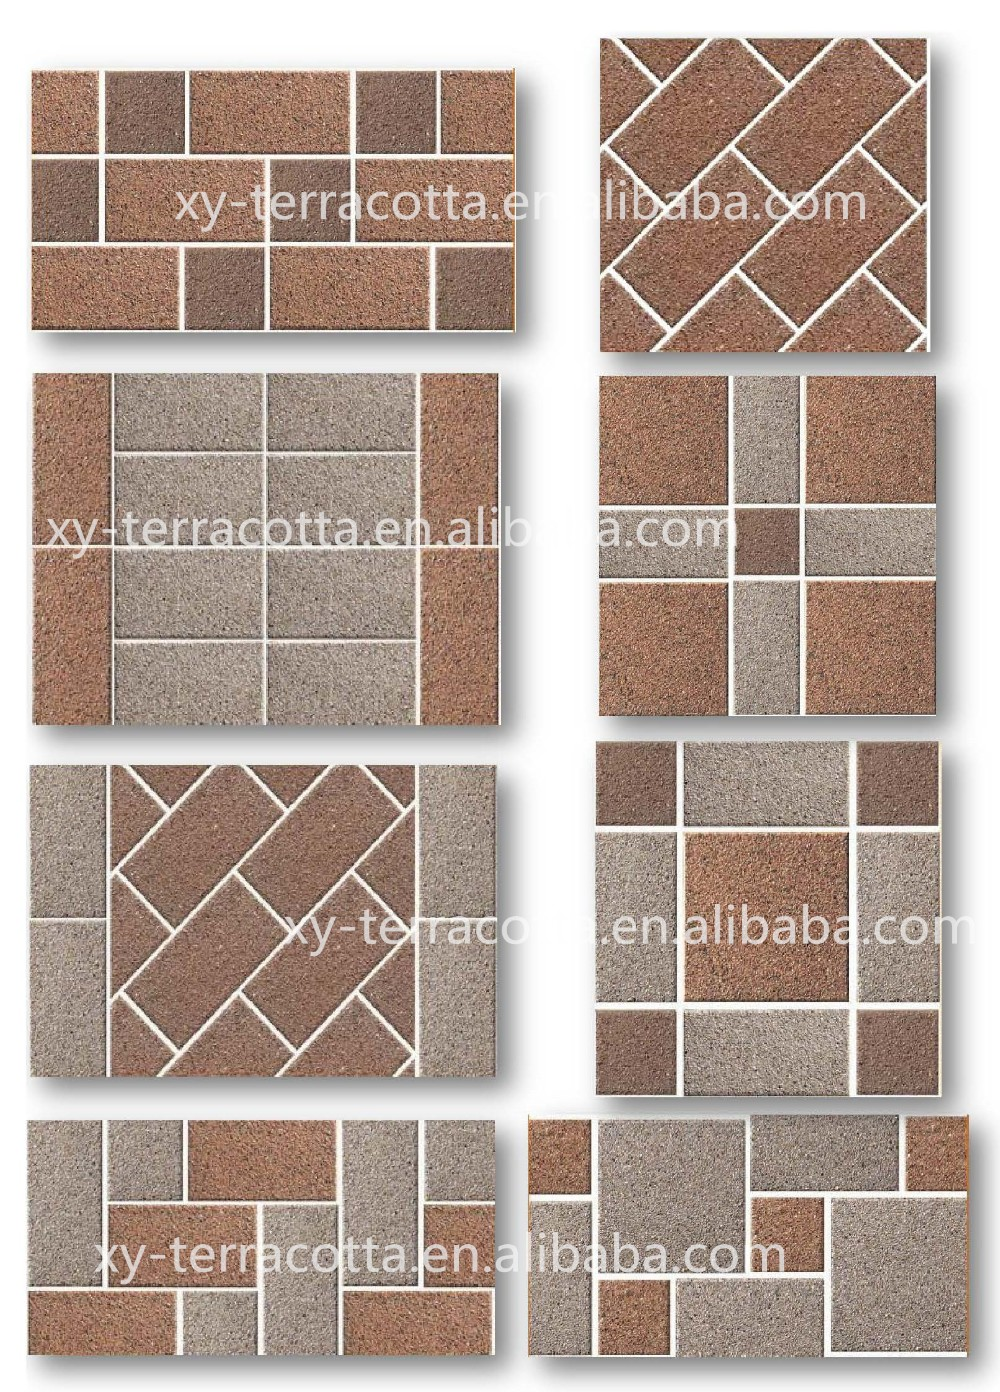 Matt floor tile designs outfoor floor tiles discontinued floor matt floor tile designs outfoor floor tiles discontinued floor tile dailygadgetfo Image collections